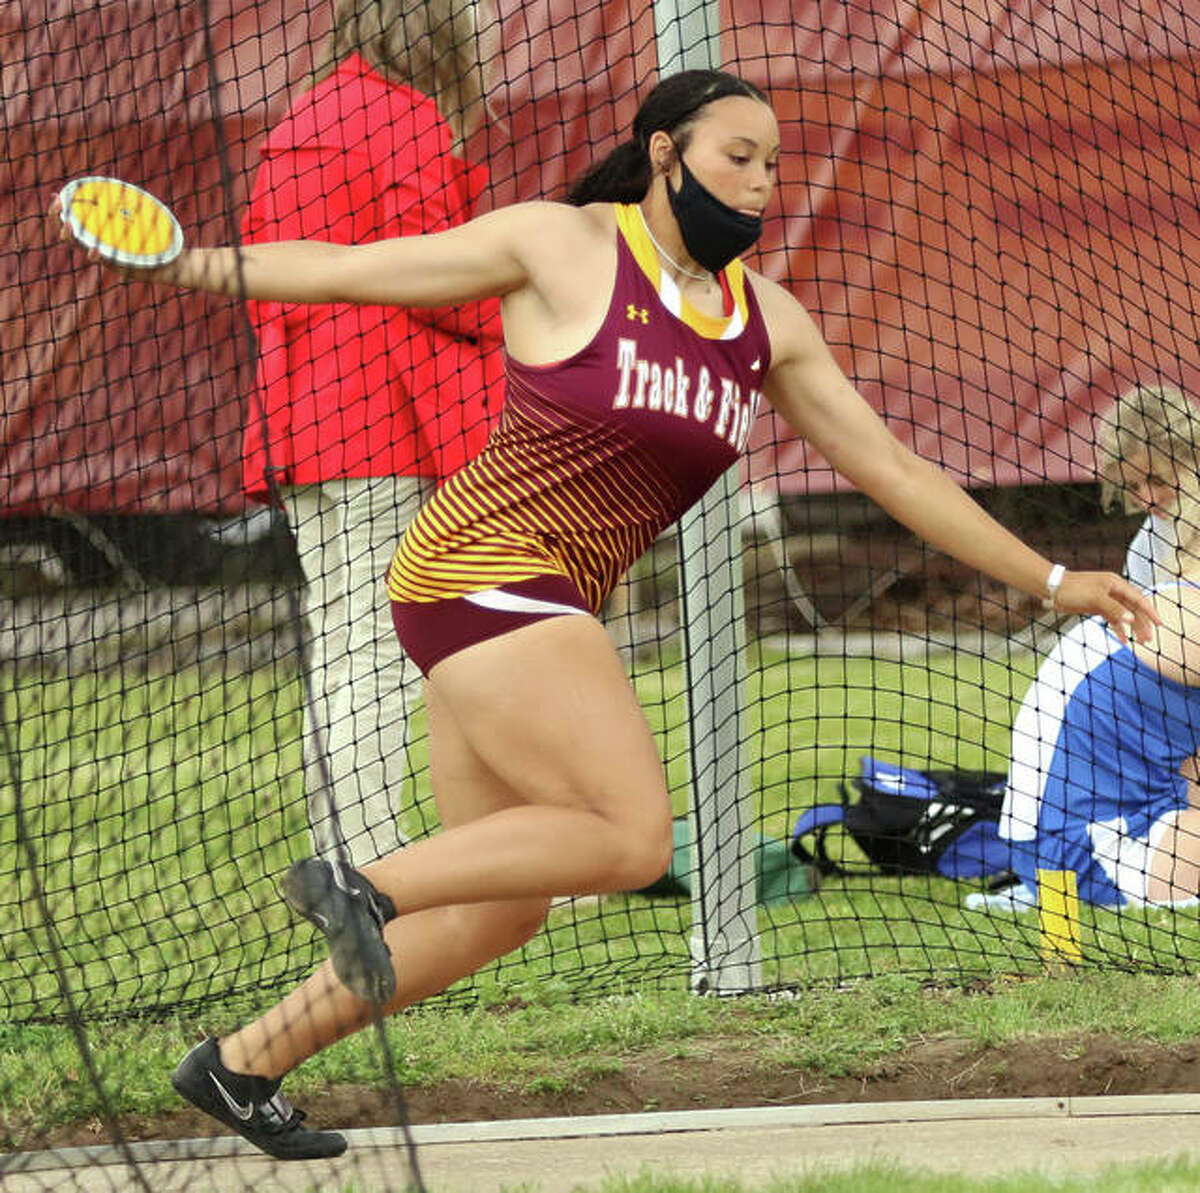 EA-WR senior Jayden Ulrich gets off a throw of 161 feet, 7 inches to set a girls track county record at the Madison County Meet on Monday in Wood River.